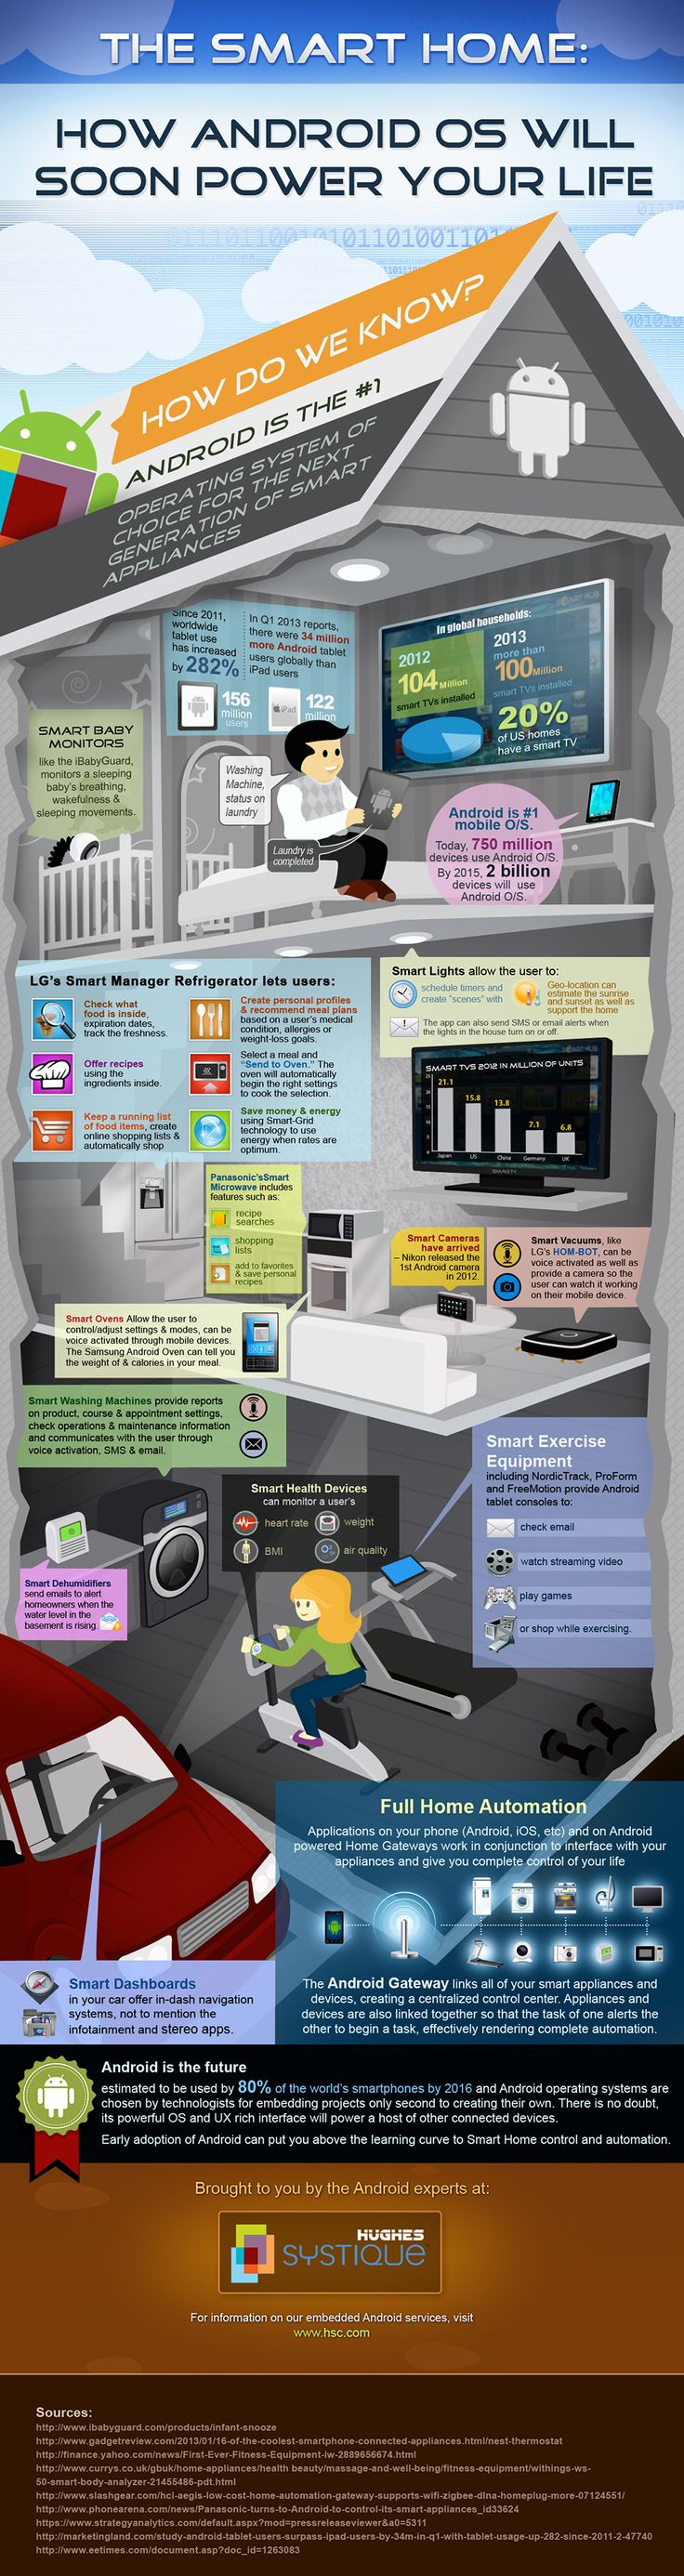 The smart home: how Android OS will soon power your life #infographic